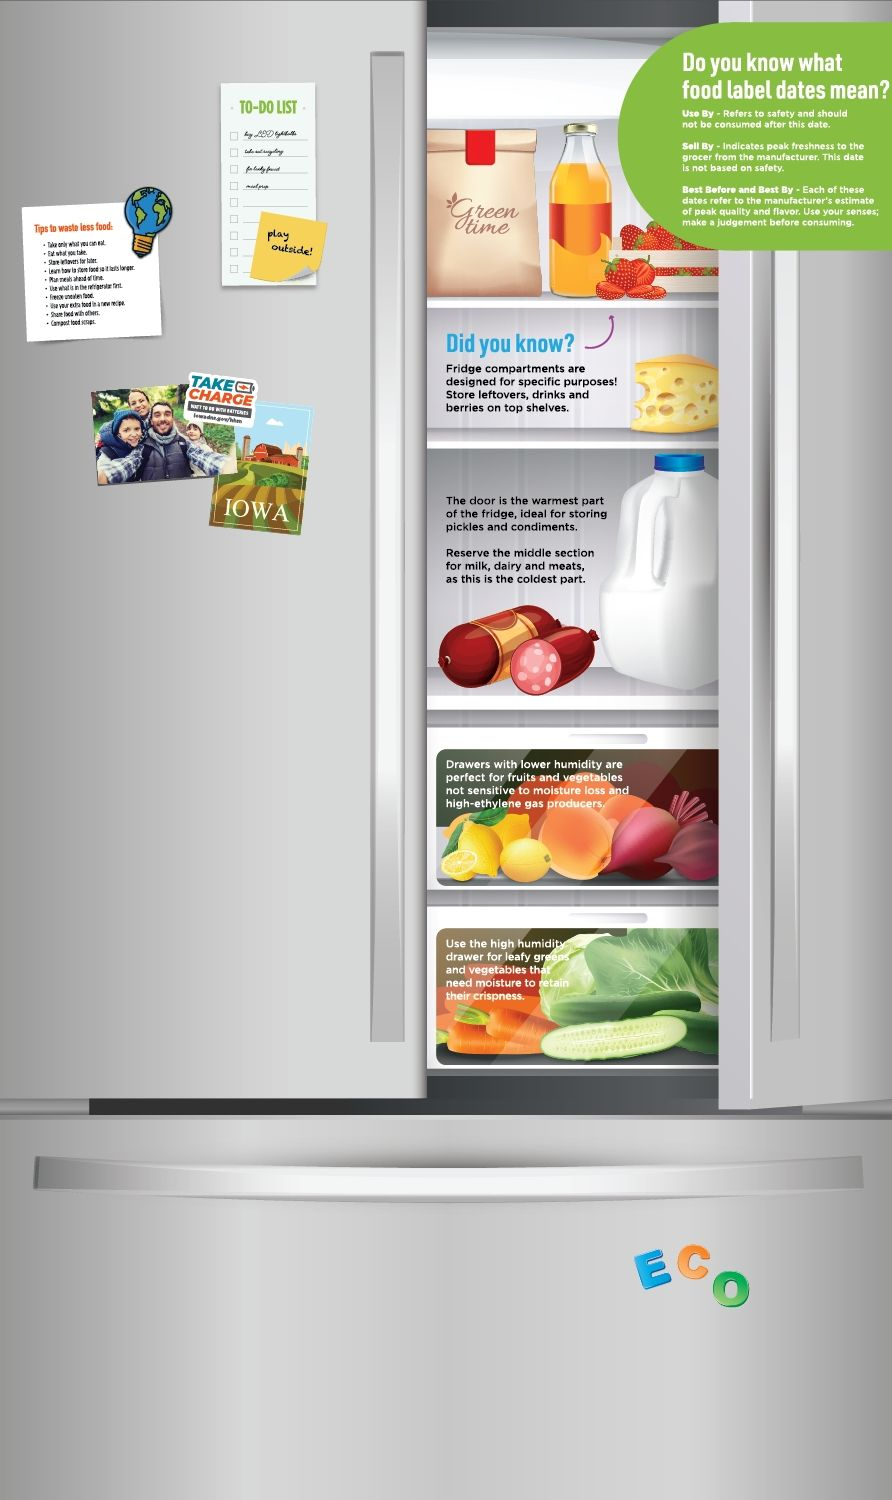 Graphic of fridge from Iowa Department of Natural Resource's trailer